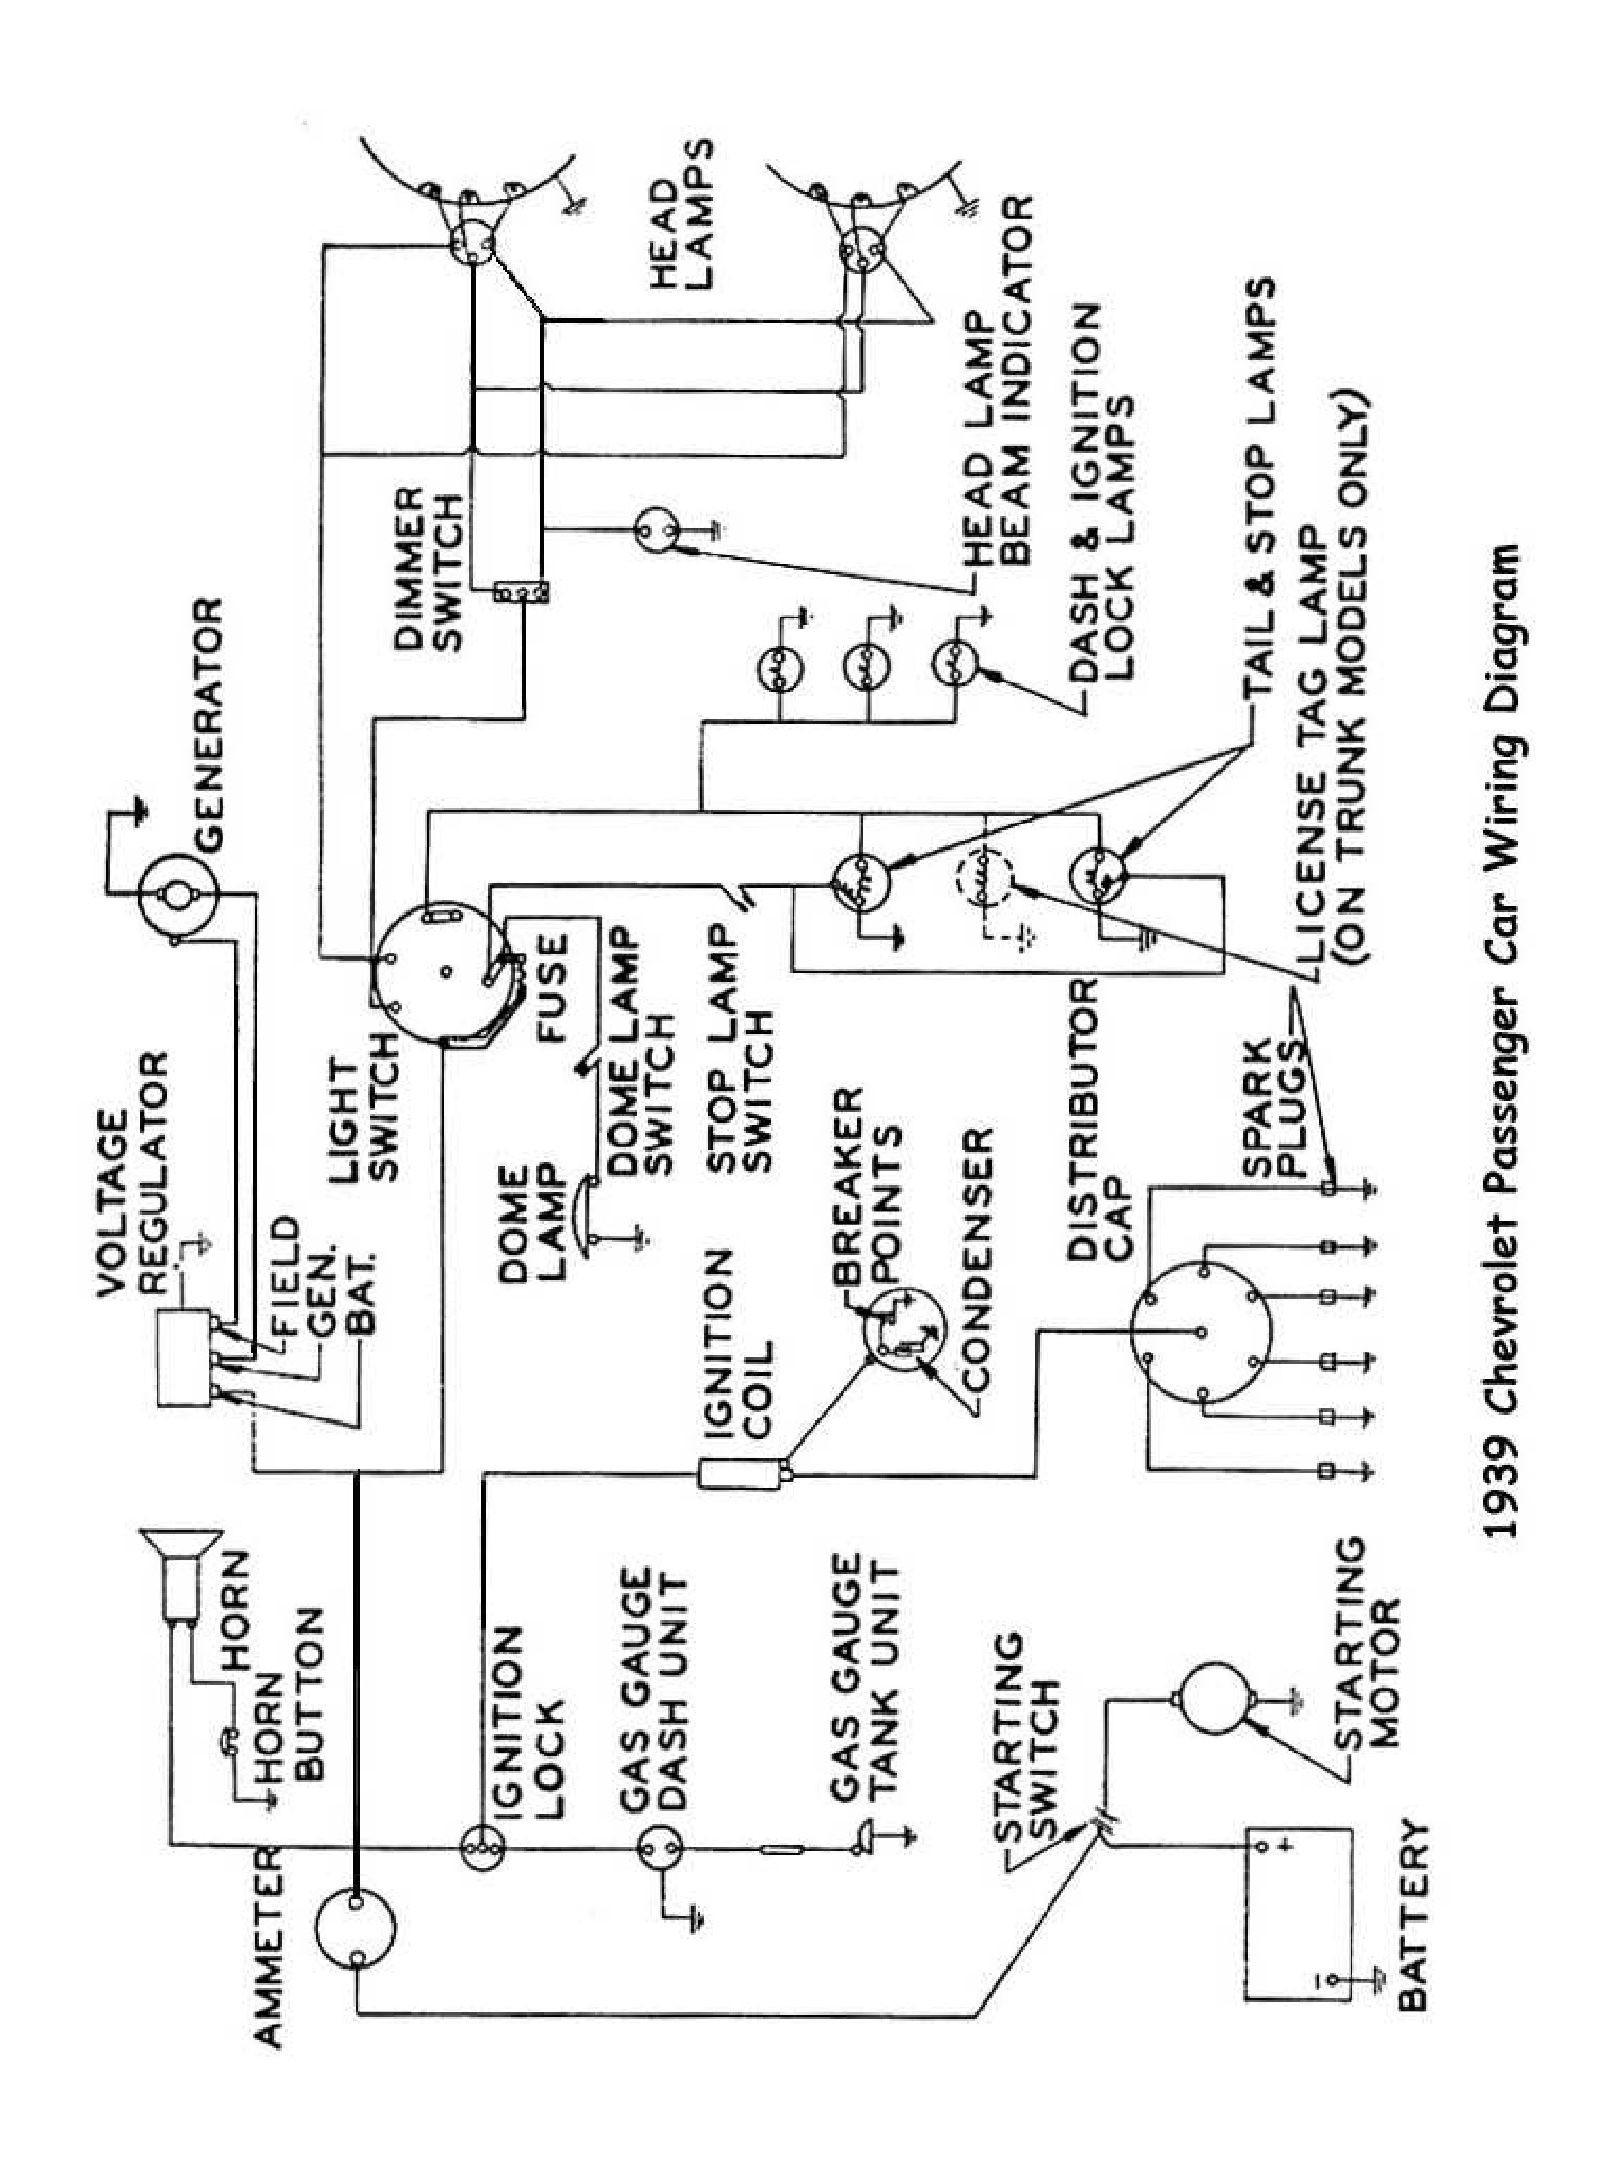 Car ignition circuit diagram awesome ignition wiring diagram diagram of car ignition circuit diagram ignition coil